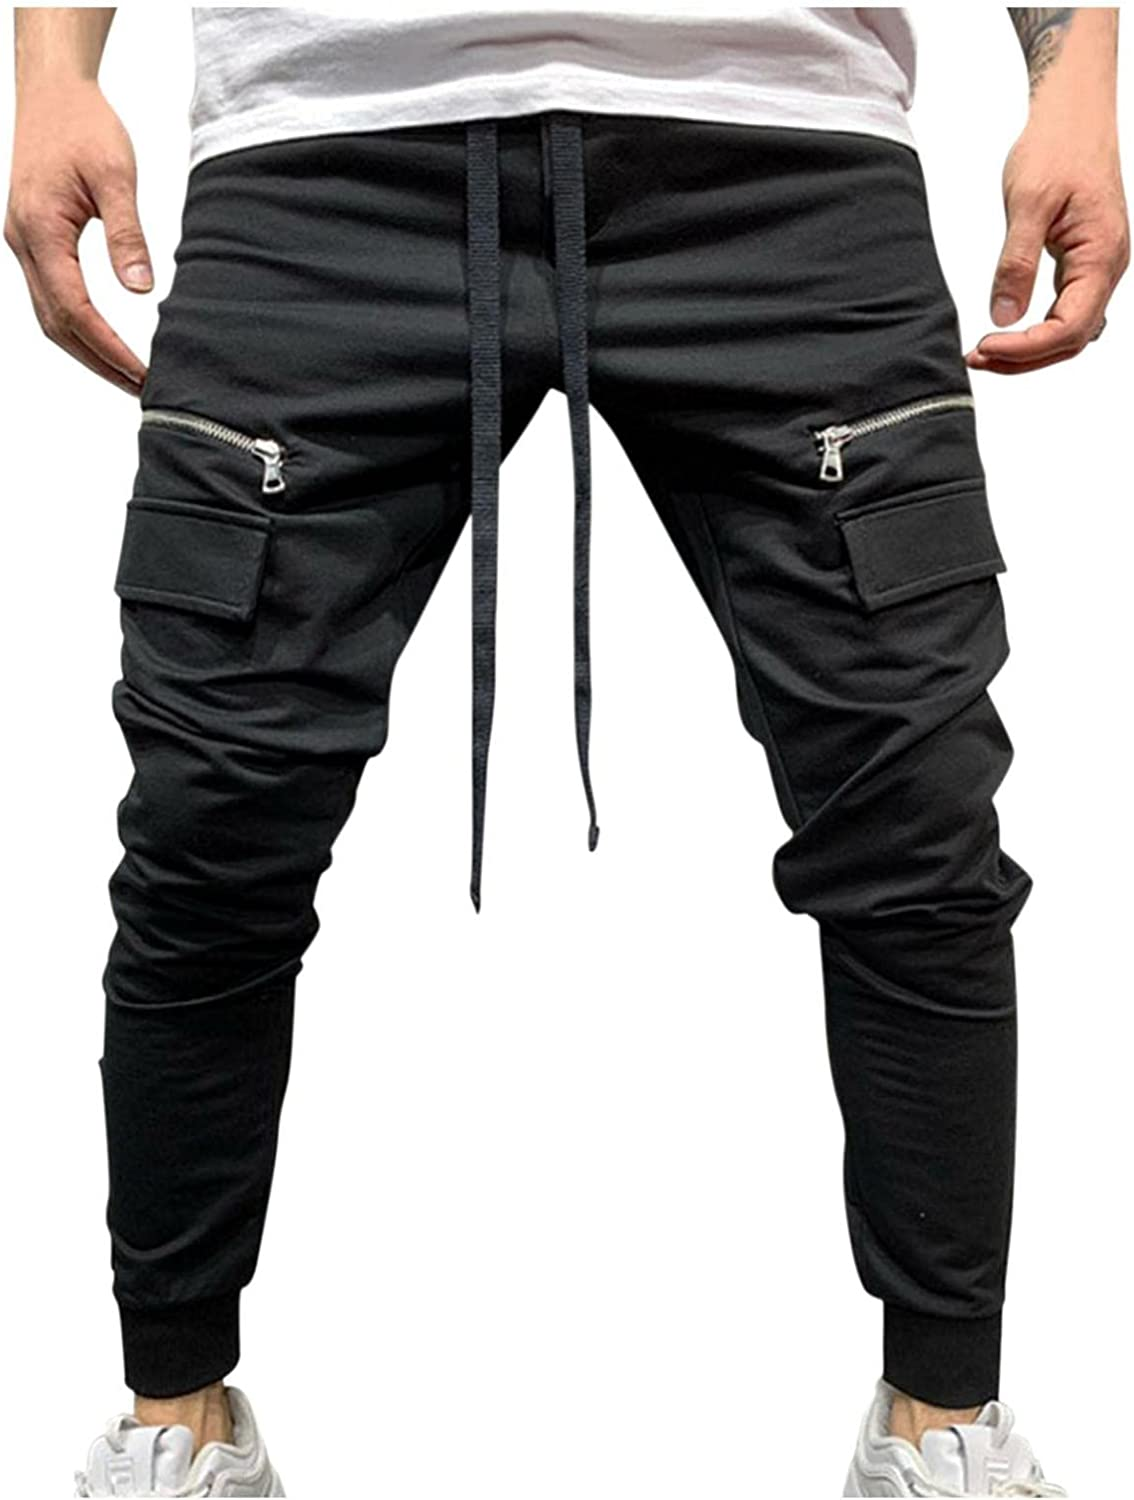 Beshion Los Angeles Mall Swetpants Attention brand for Men Slim Casual Jogger Pants Fit Mid-Waist